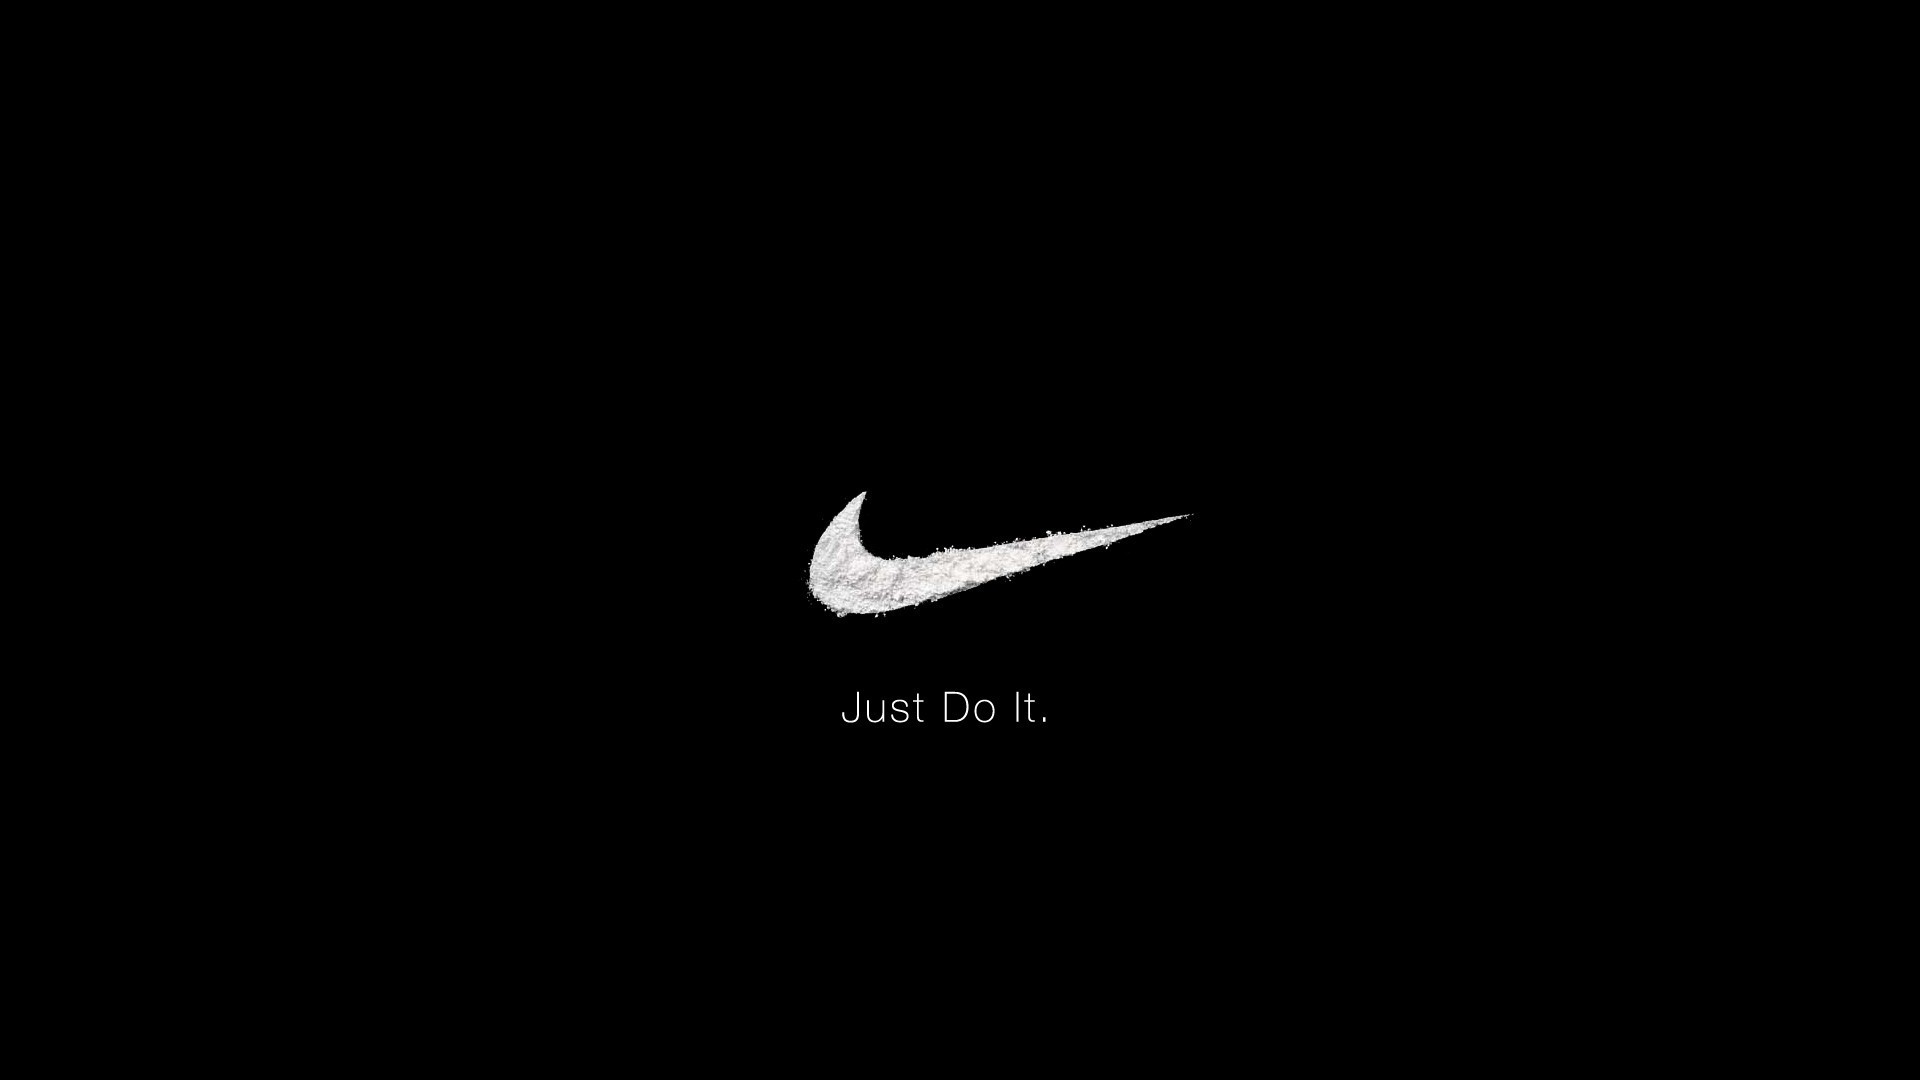 Just Do It Wallpaper